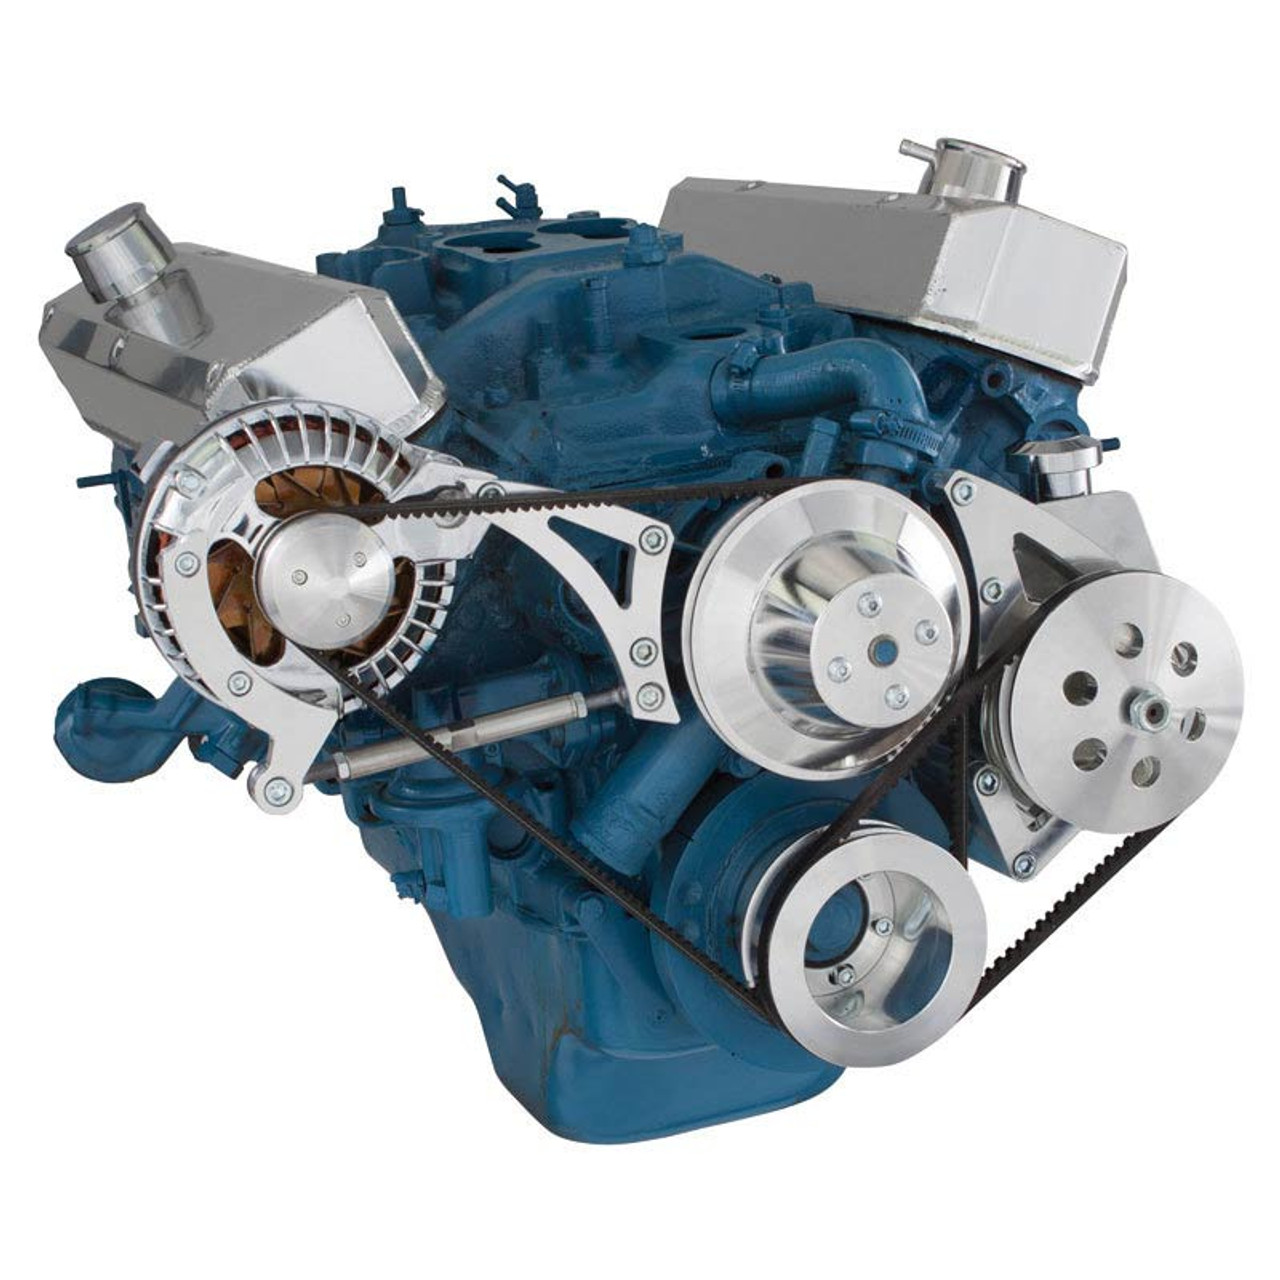 Chrysler Small Block Power Steering & Alternator System (318, 340 & 360)